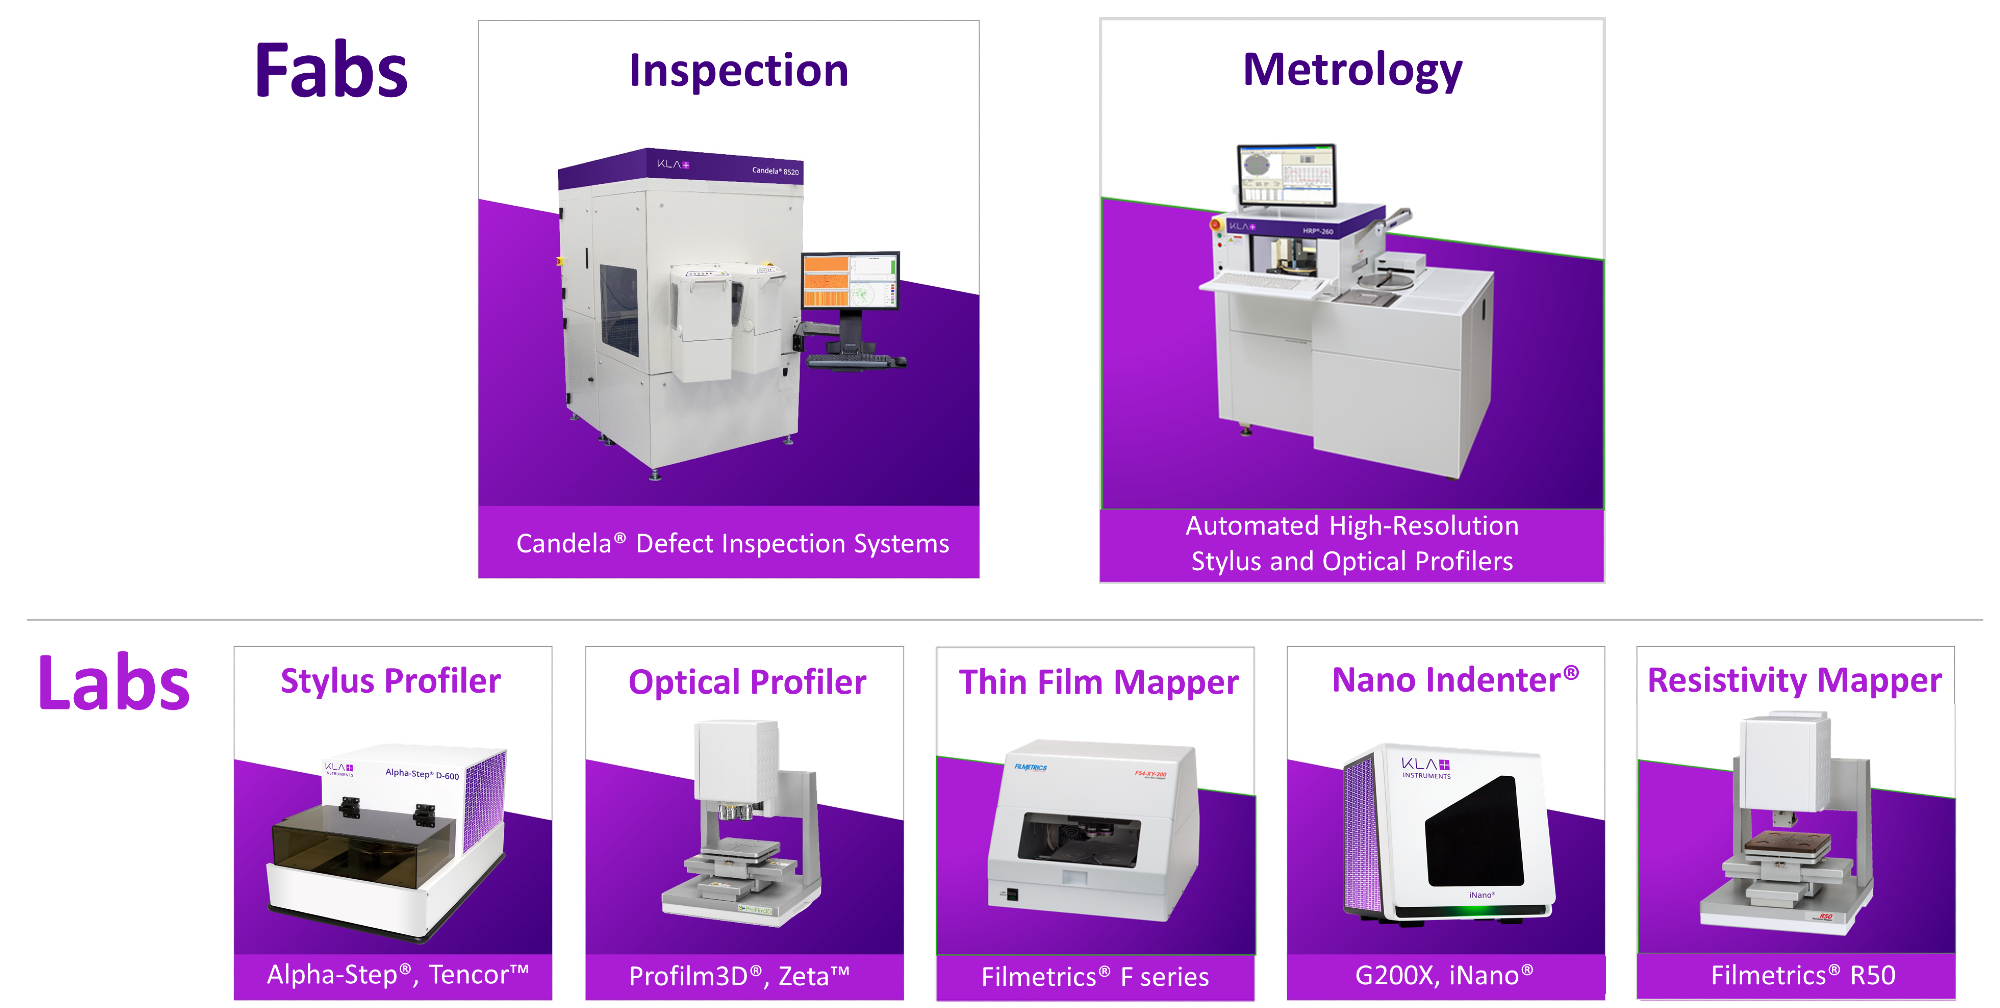 KLA Instruments Completes One Year as a Surface Metrology Group Catering to Labs and Fabs   KLA